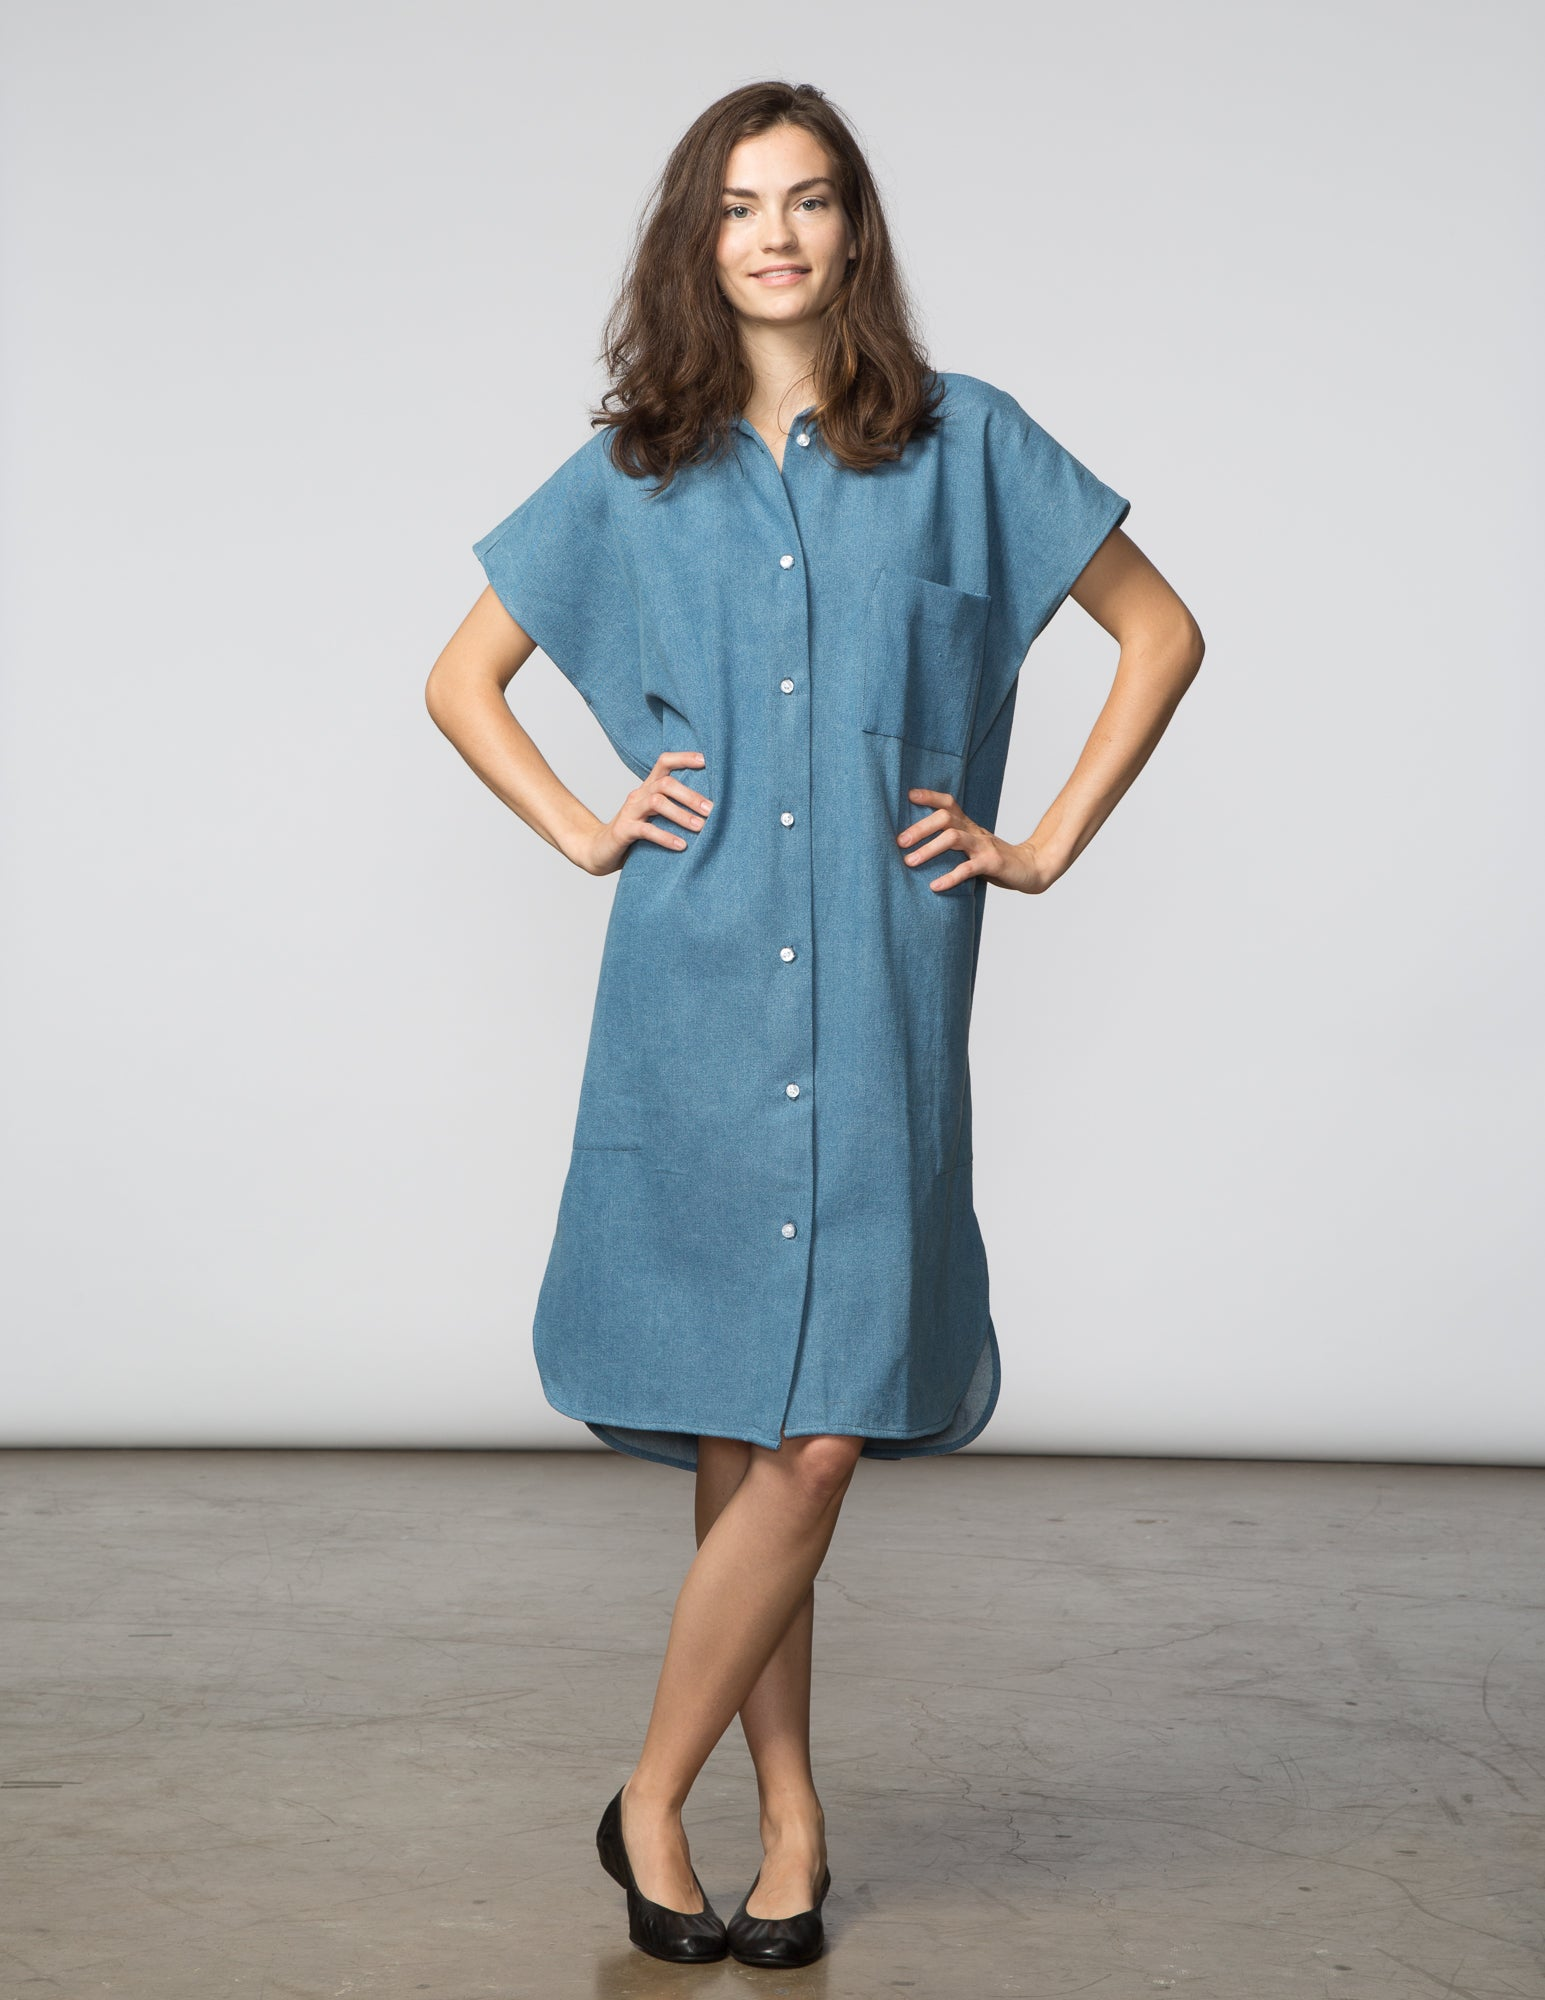 R Dress - Light Denim